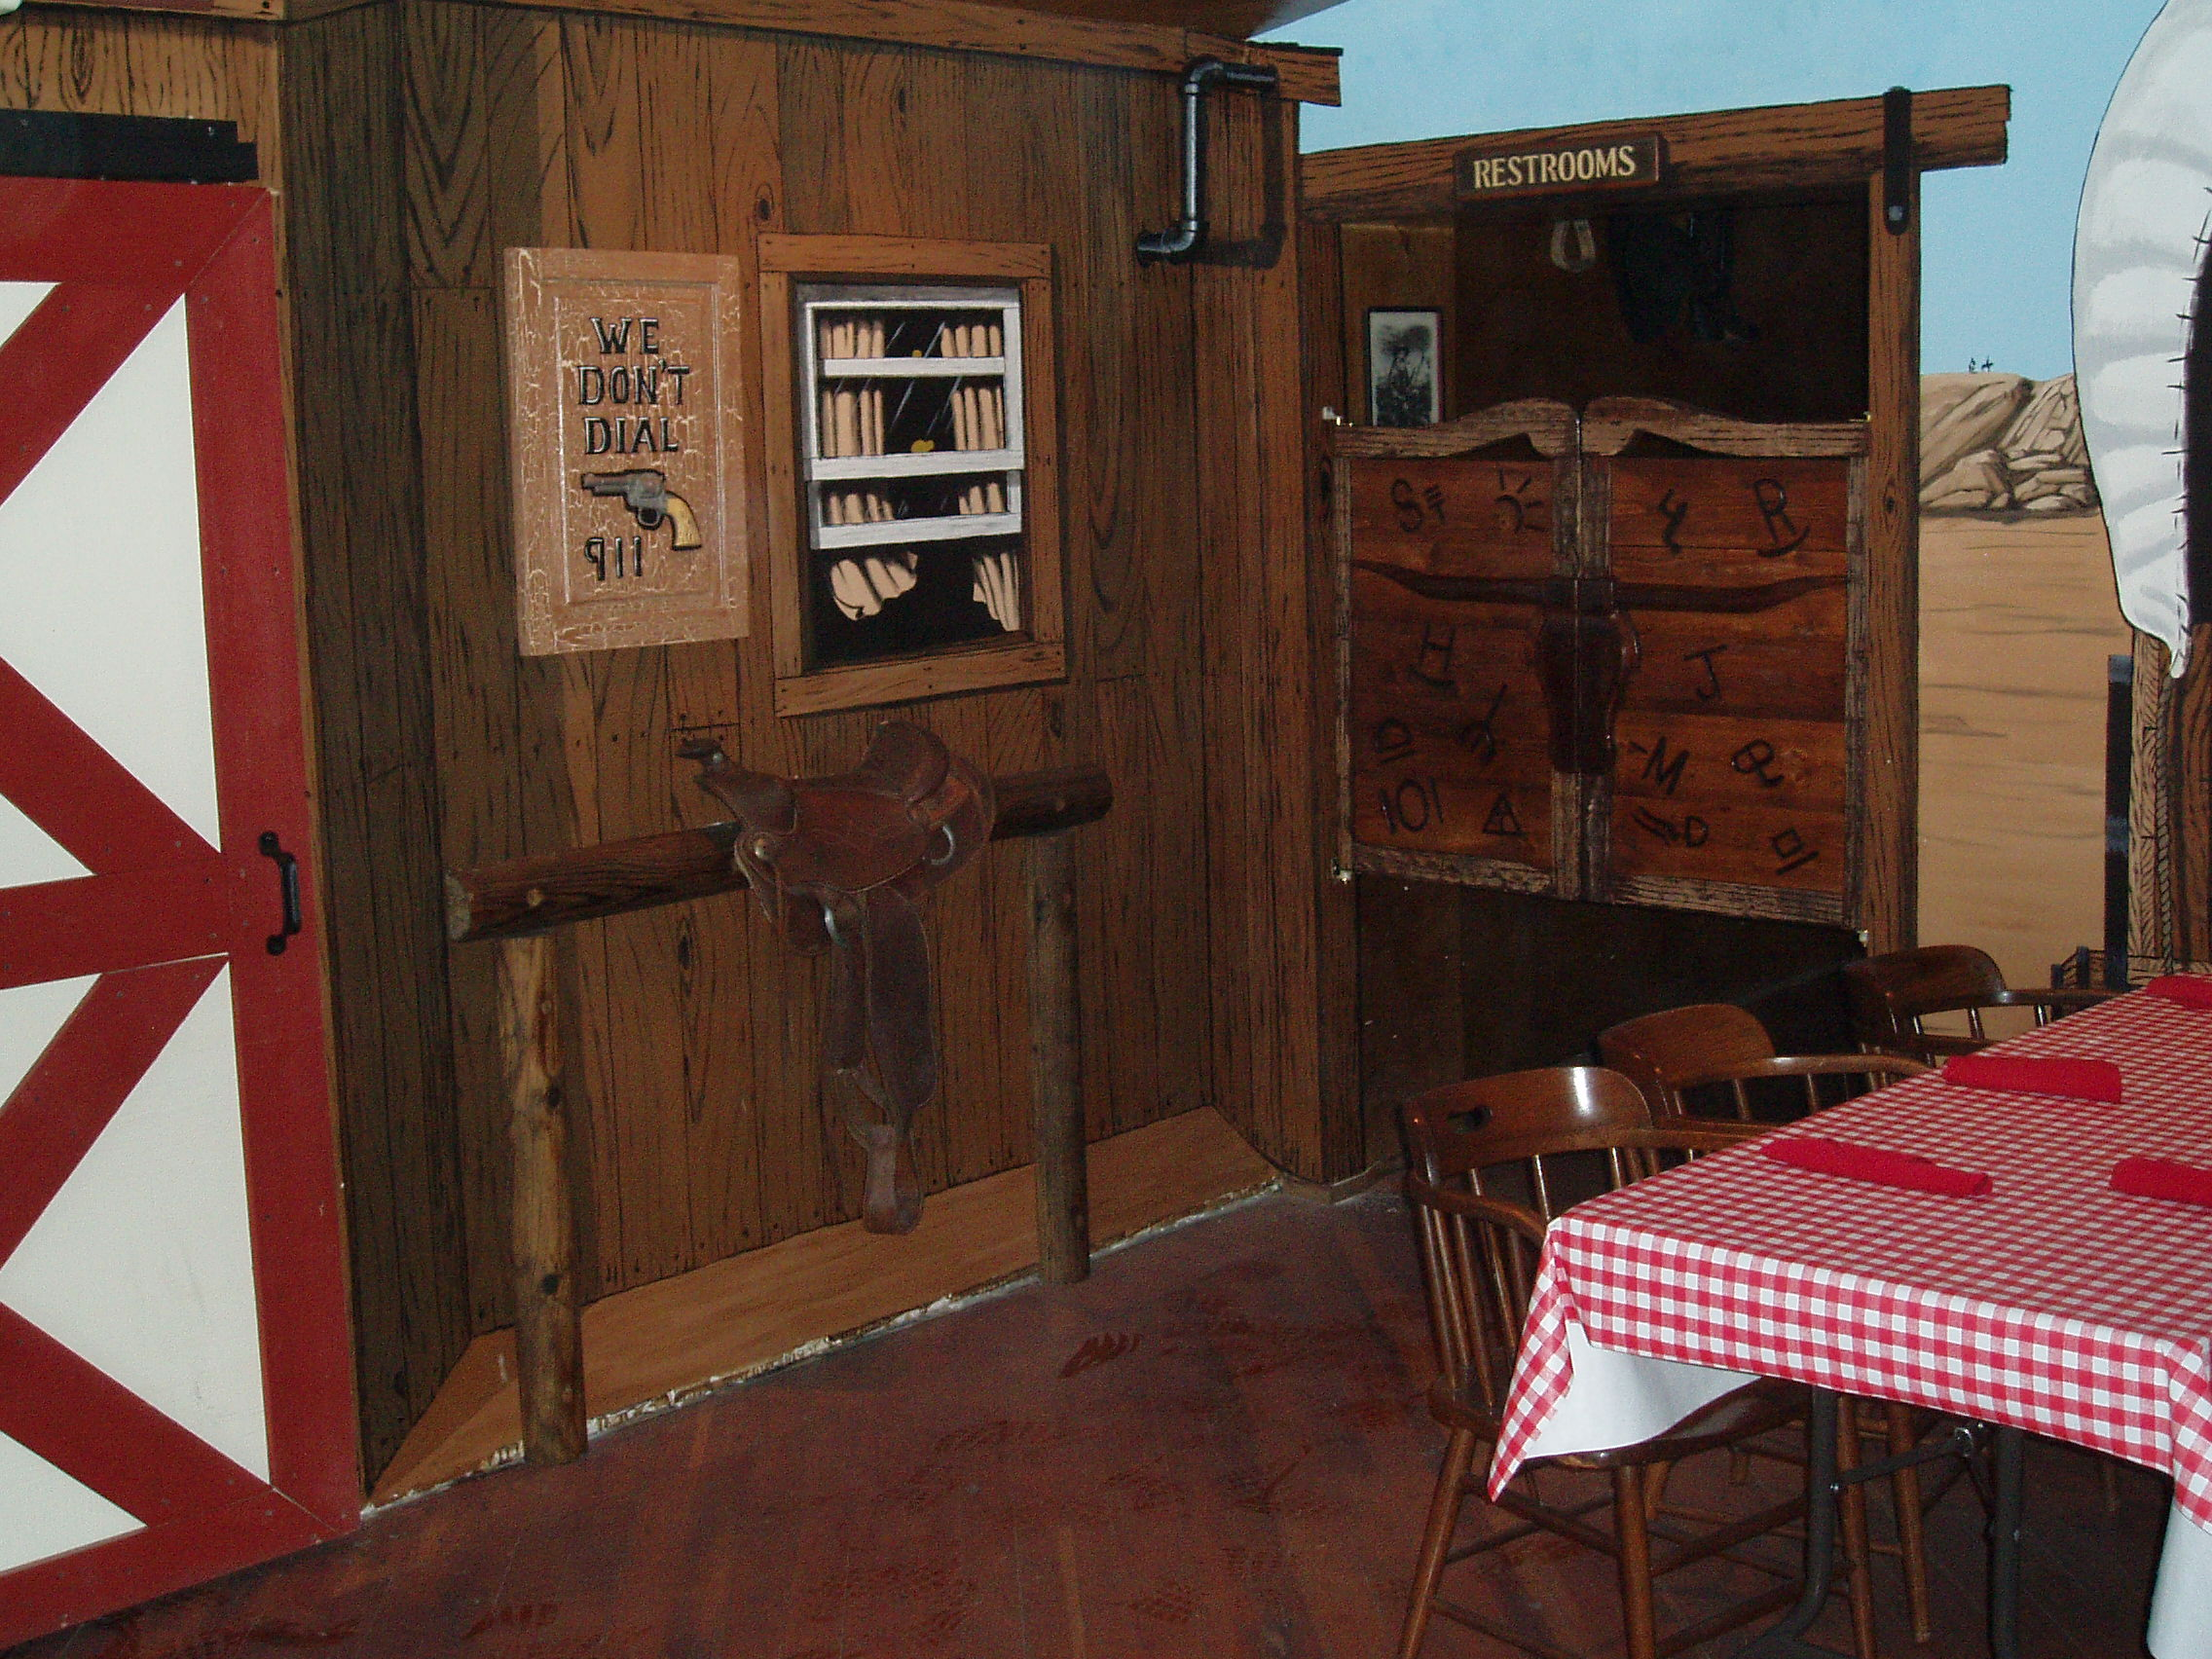 Western Woodwork & Mural Wagon Wheel Restaurant Interior Santee California 6.JPG